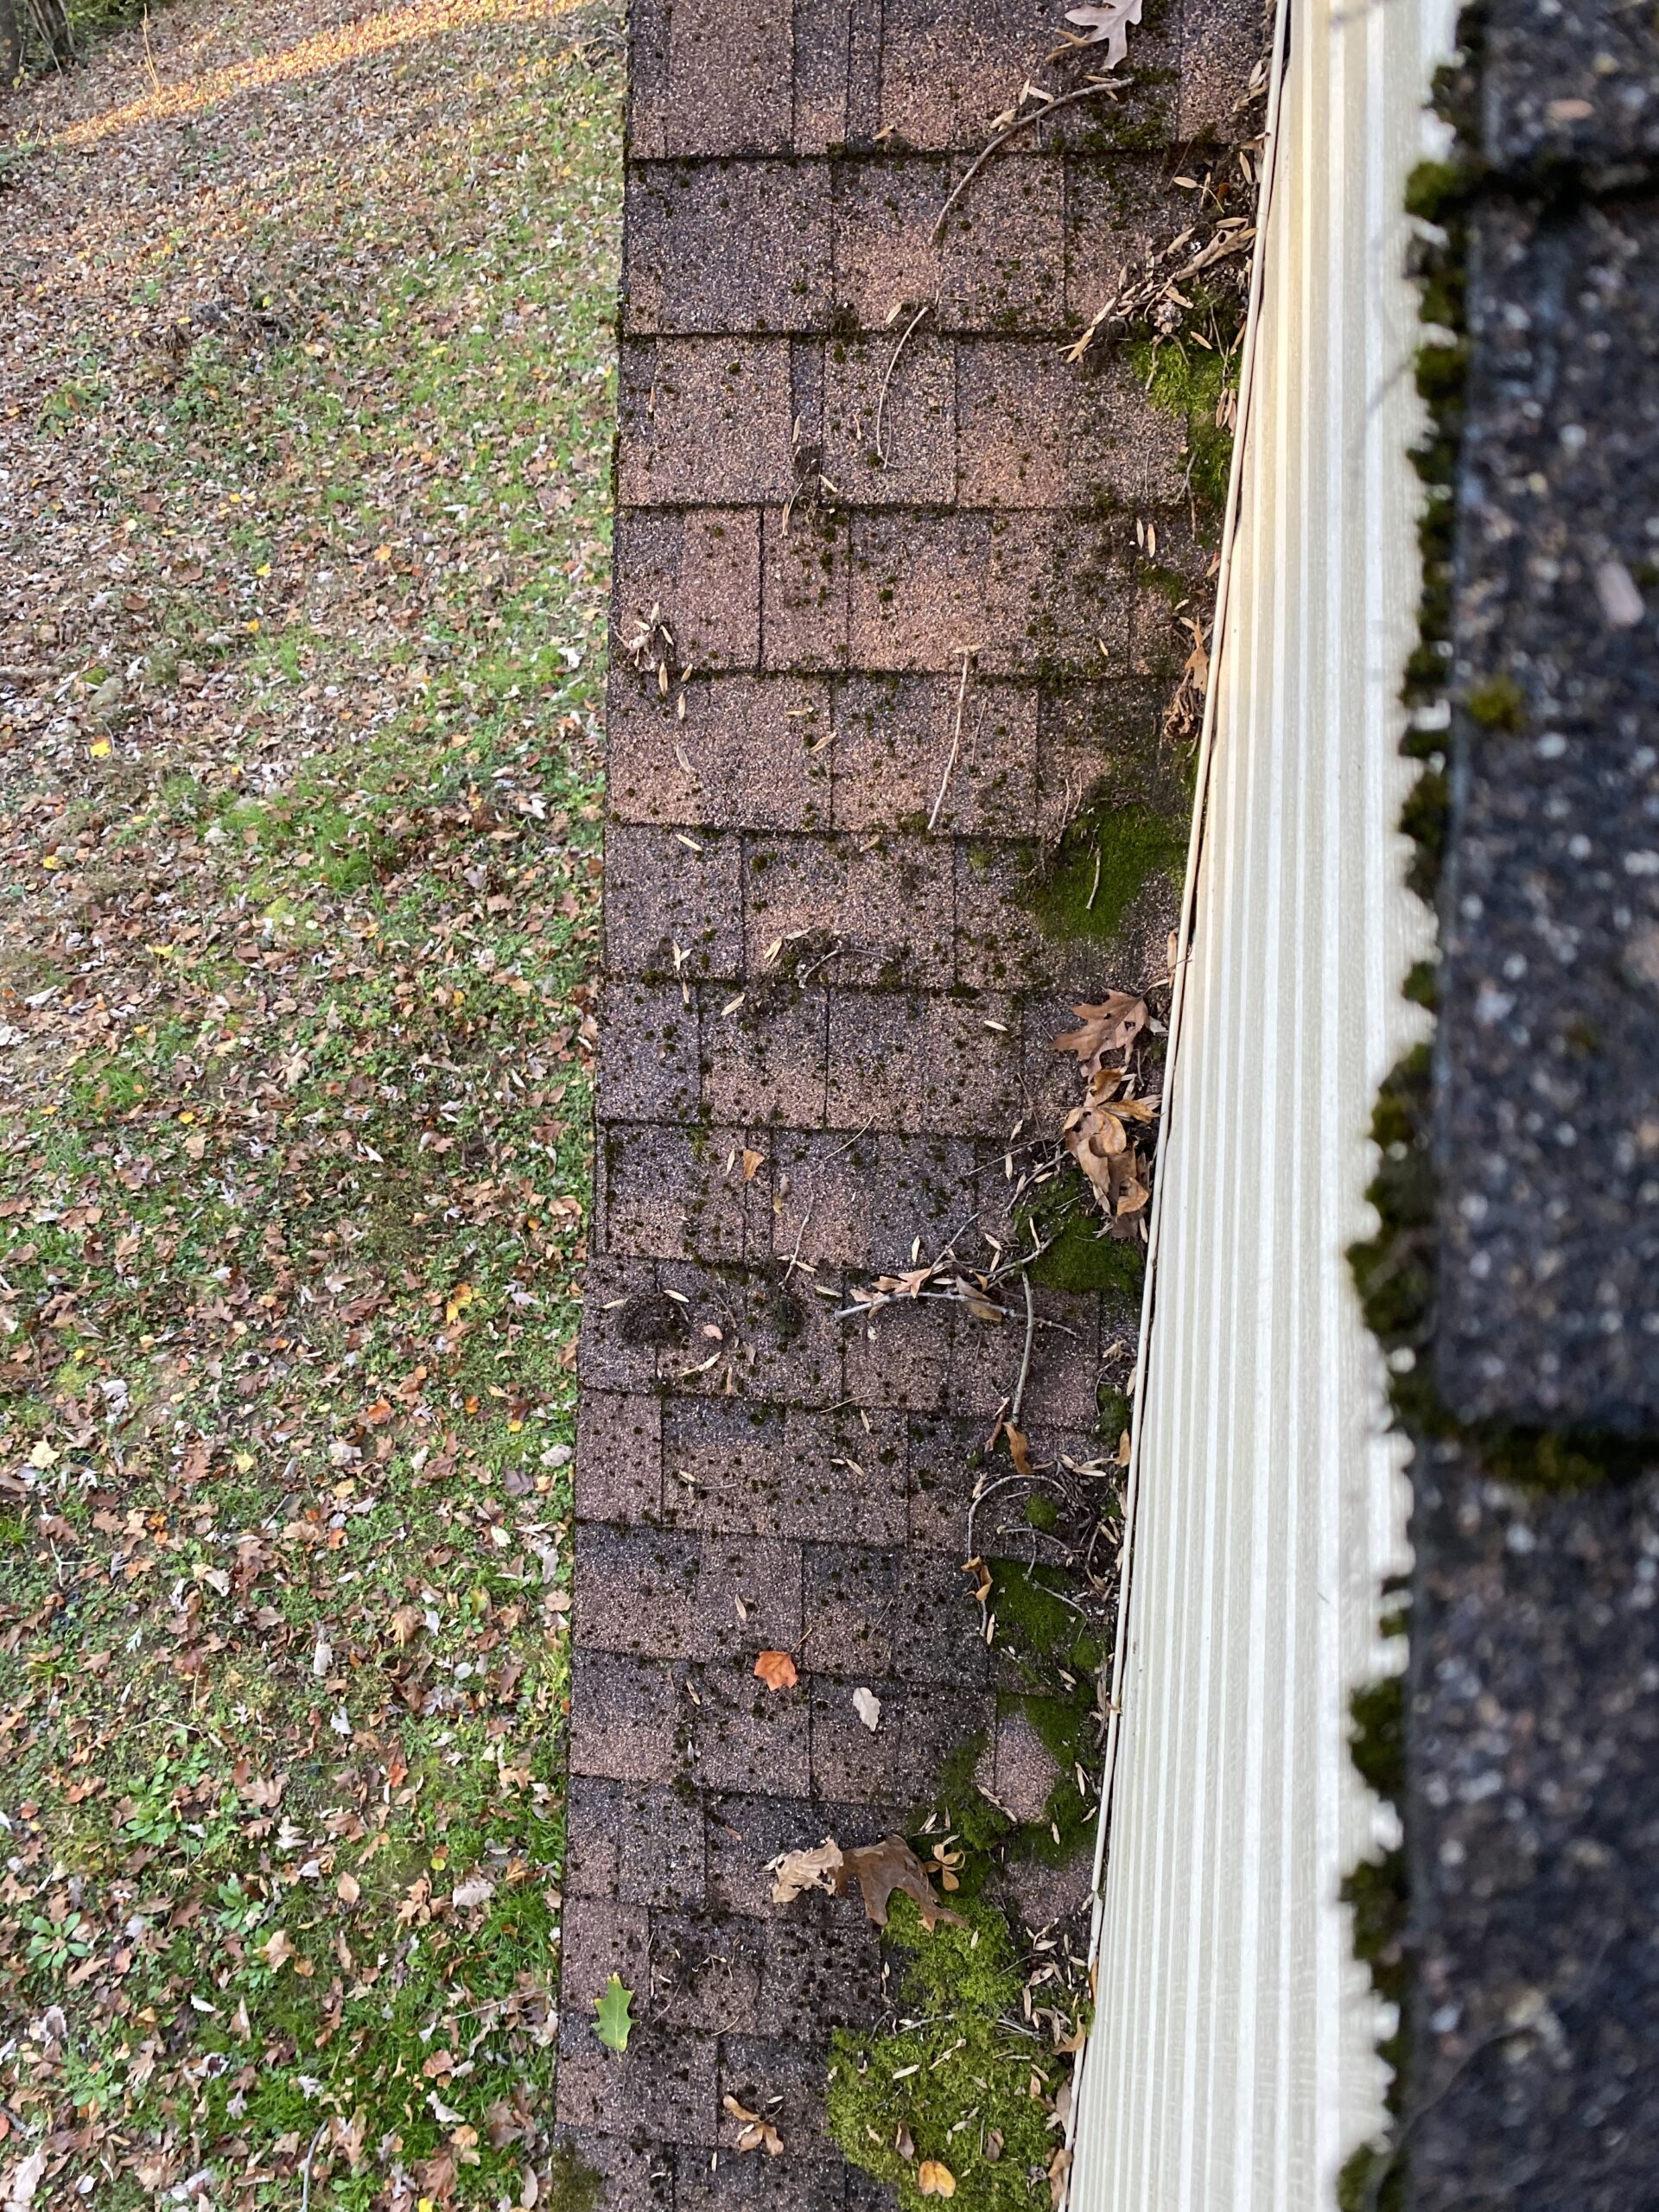 These are brown shingles on a gable that need to be replaced